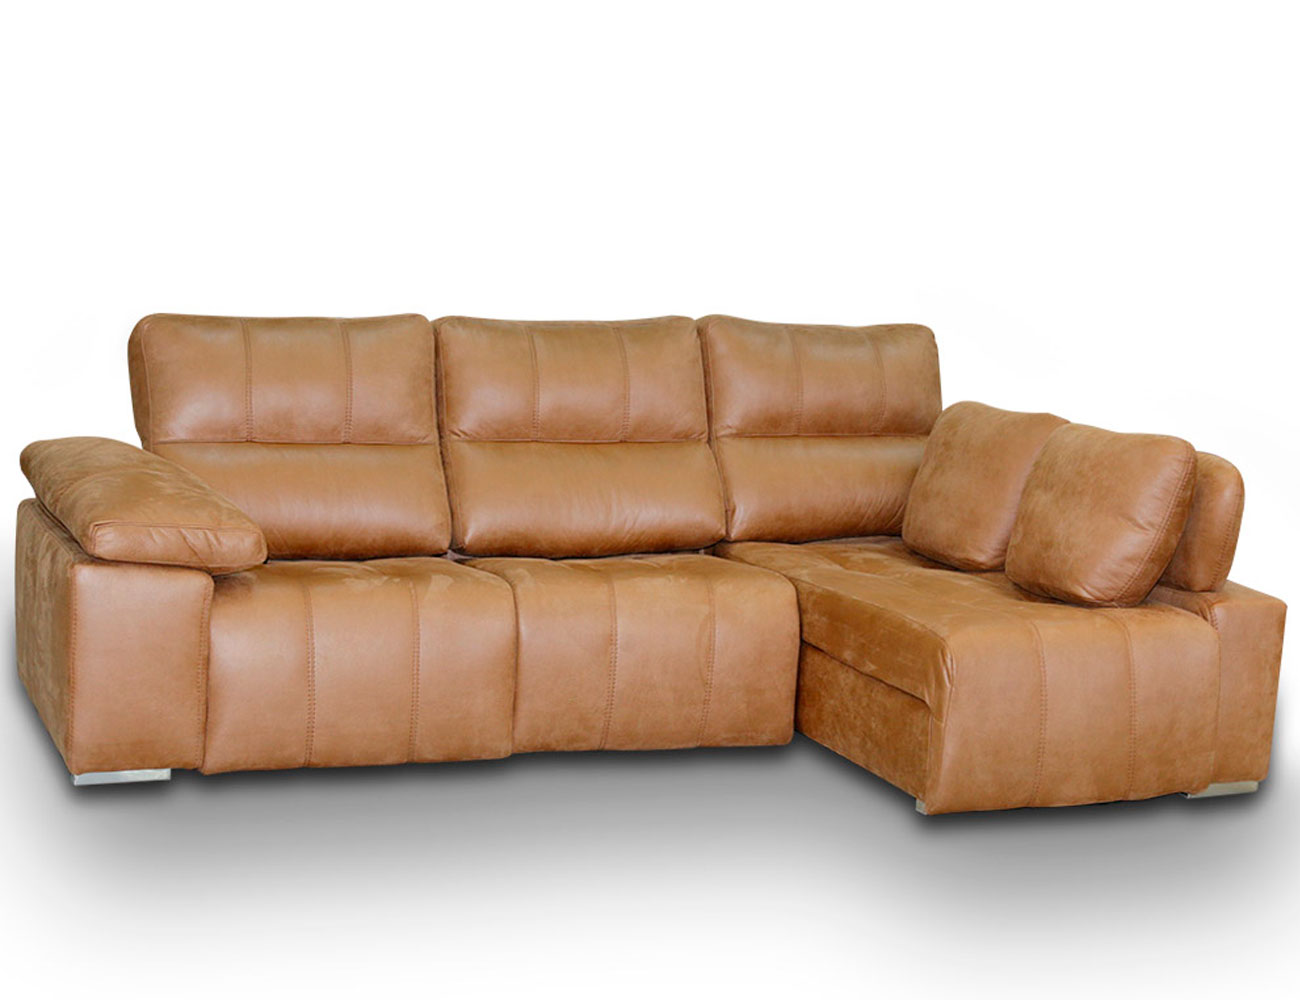 Sofa chaiselongue relax 2 motores anti manchas25